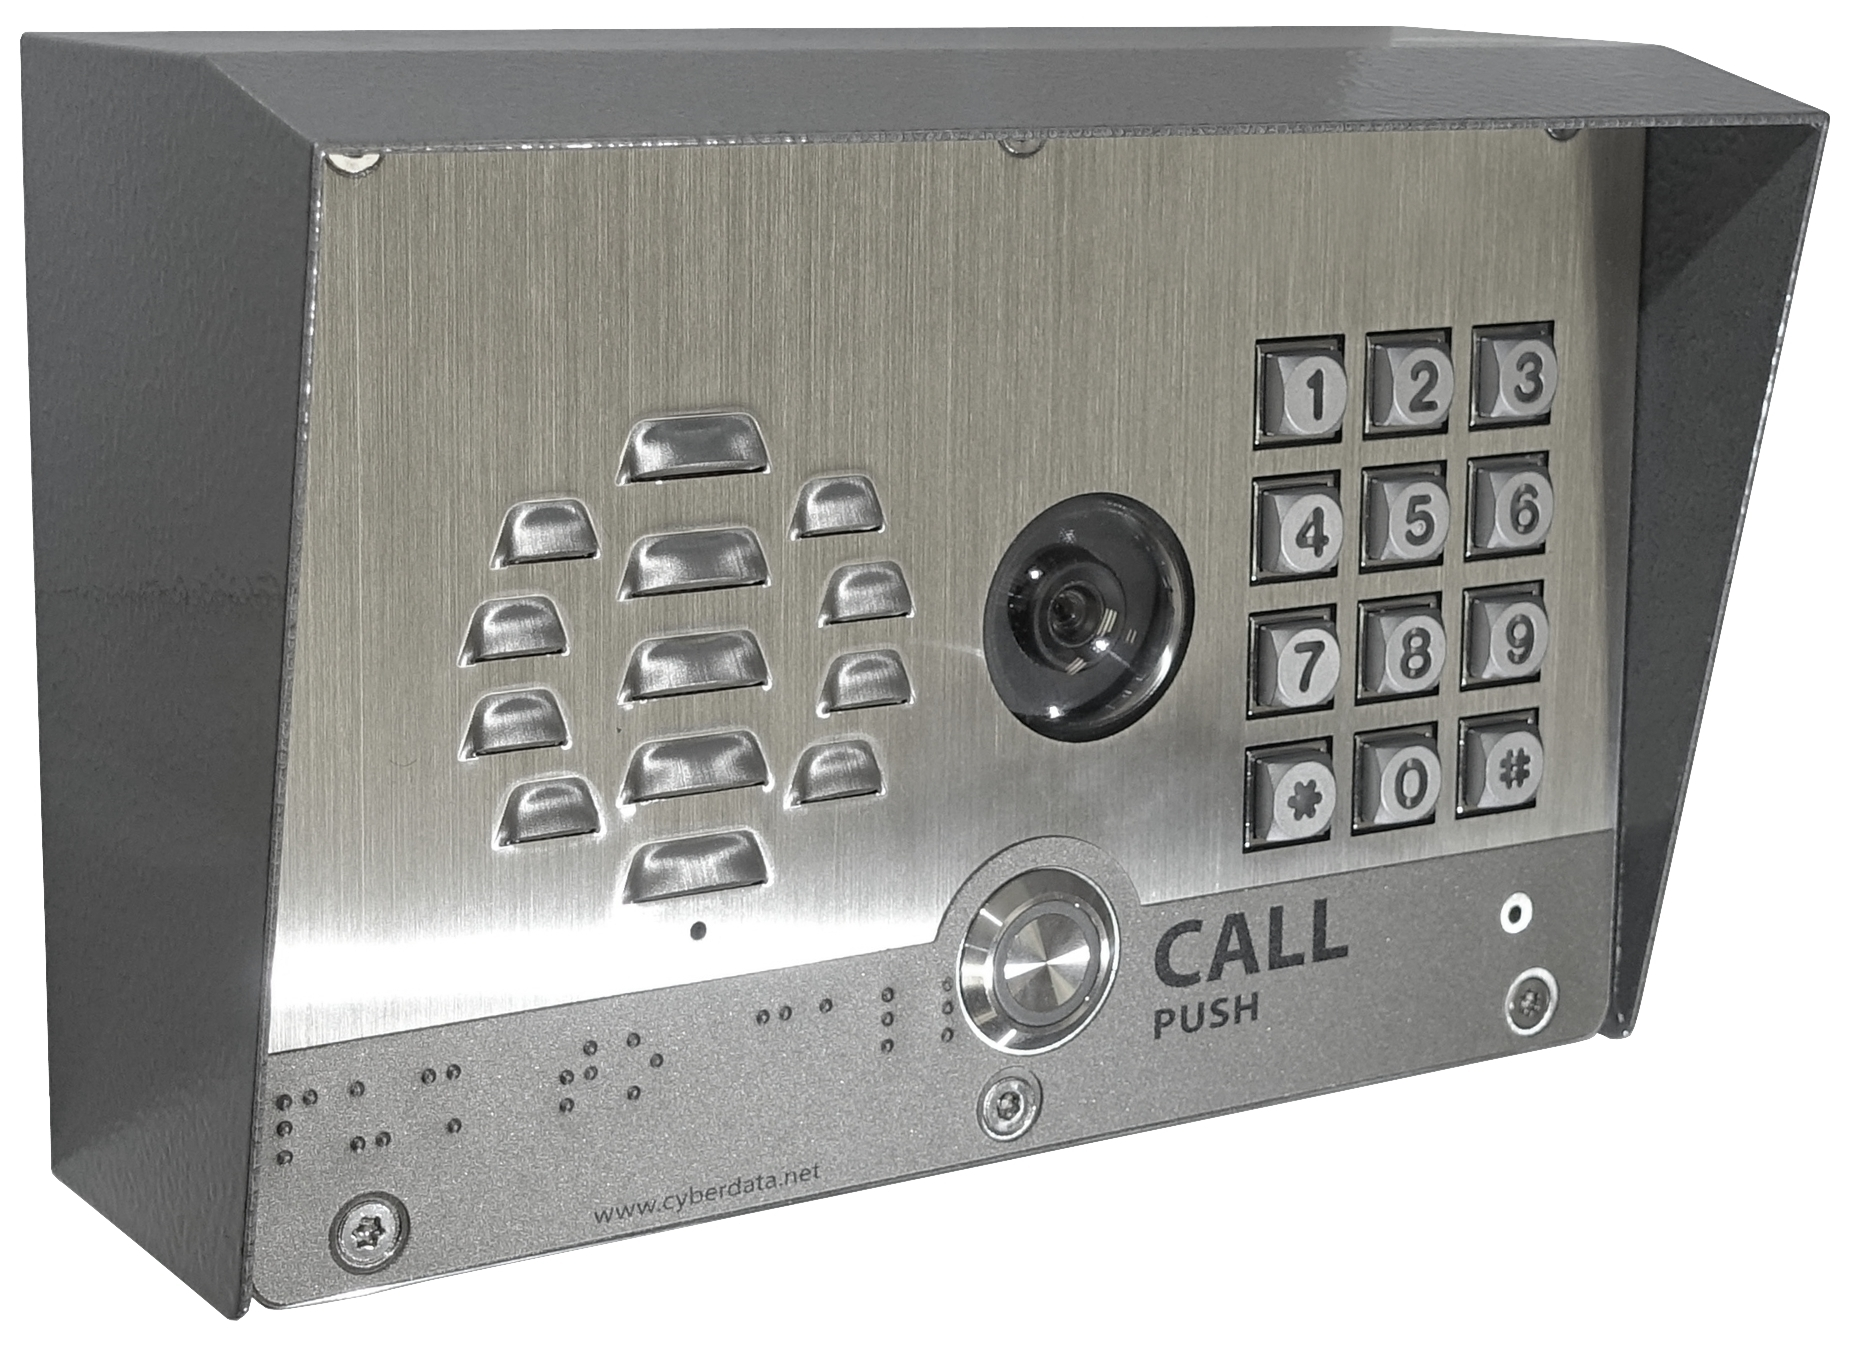 011414 SIP-enabled Outdoor H.264 Video Intercom w/Keypad. (Photo: Business Wire)